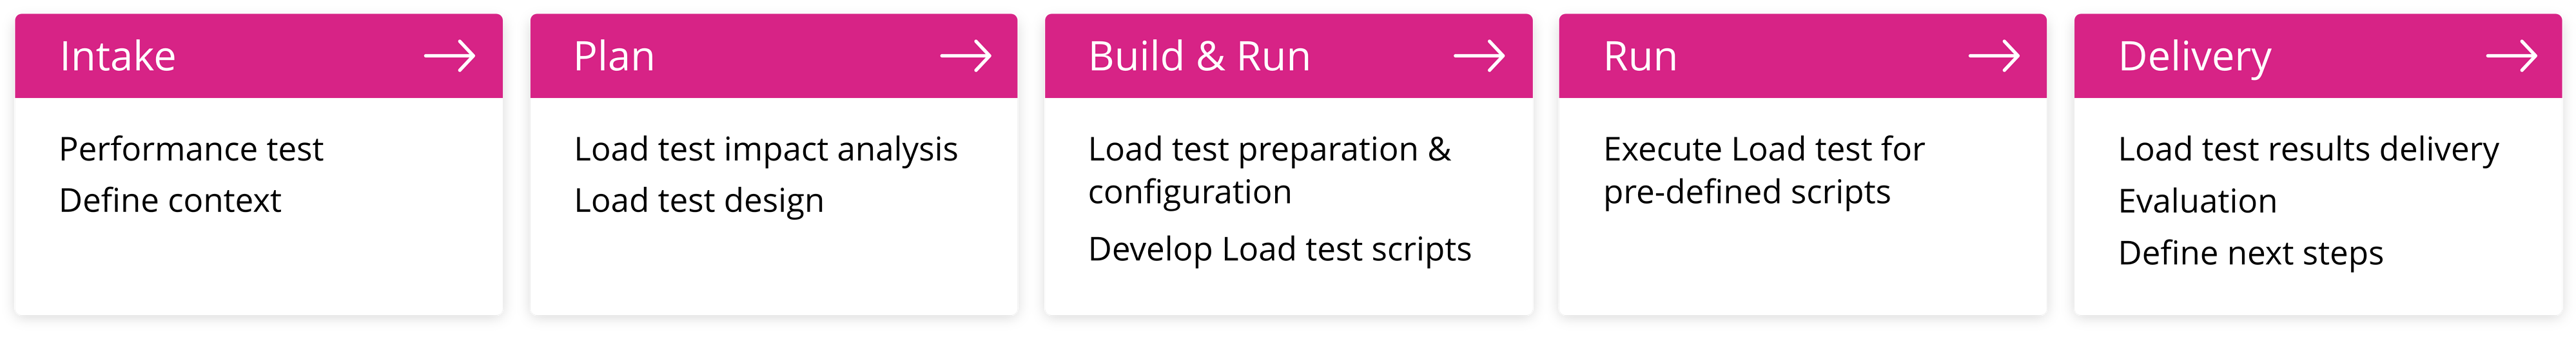 LOAD TEST PLAN@2x